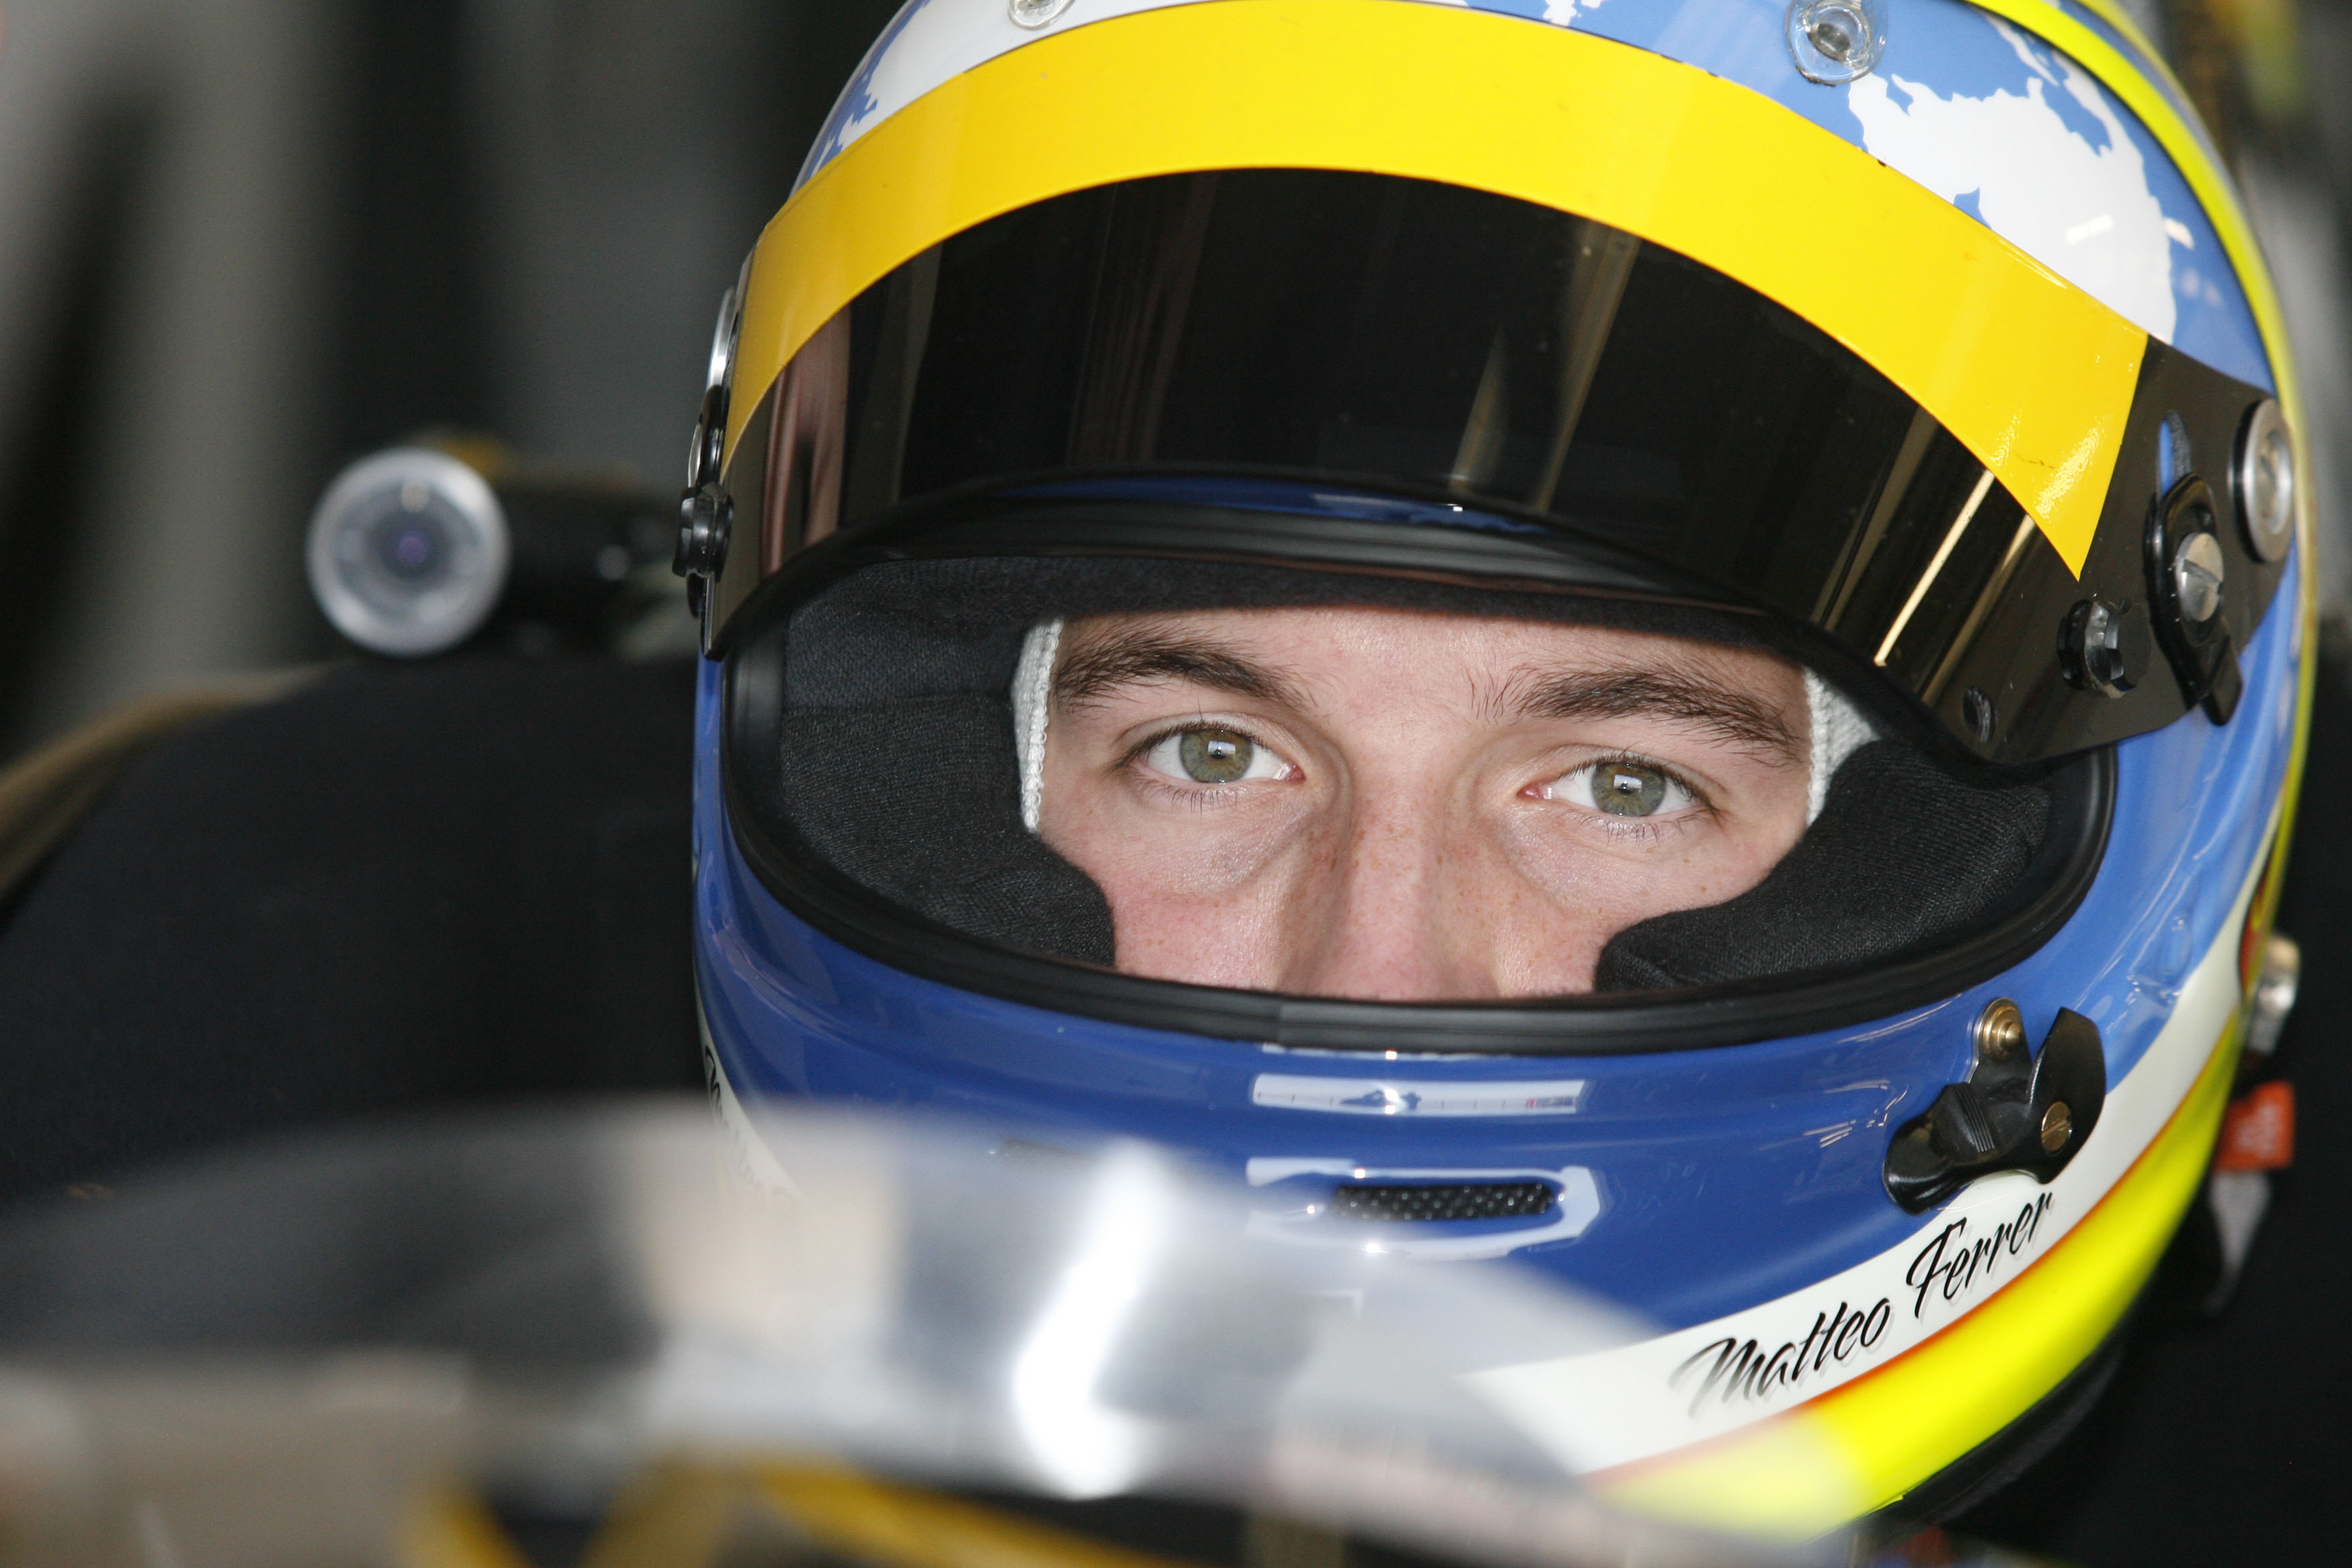 Matteo Ferrer sits in his Protyre Formula Renault at Silverstone waiting for the session to start. Silverstone, UK, 2013